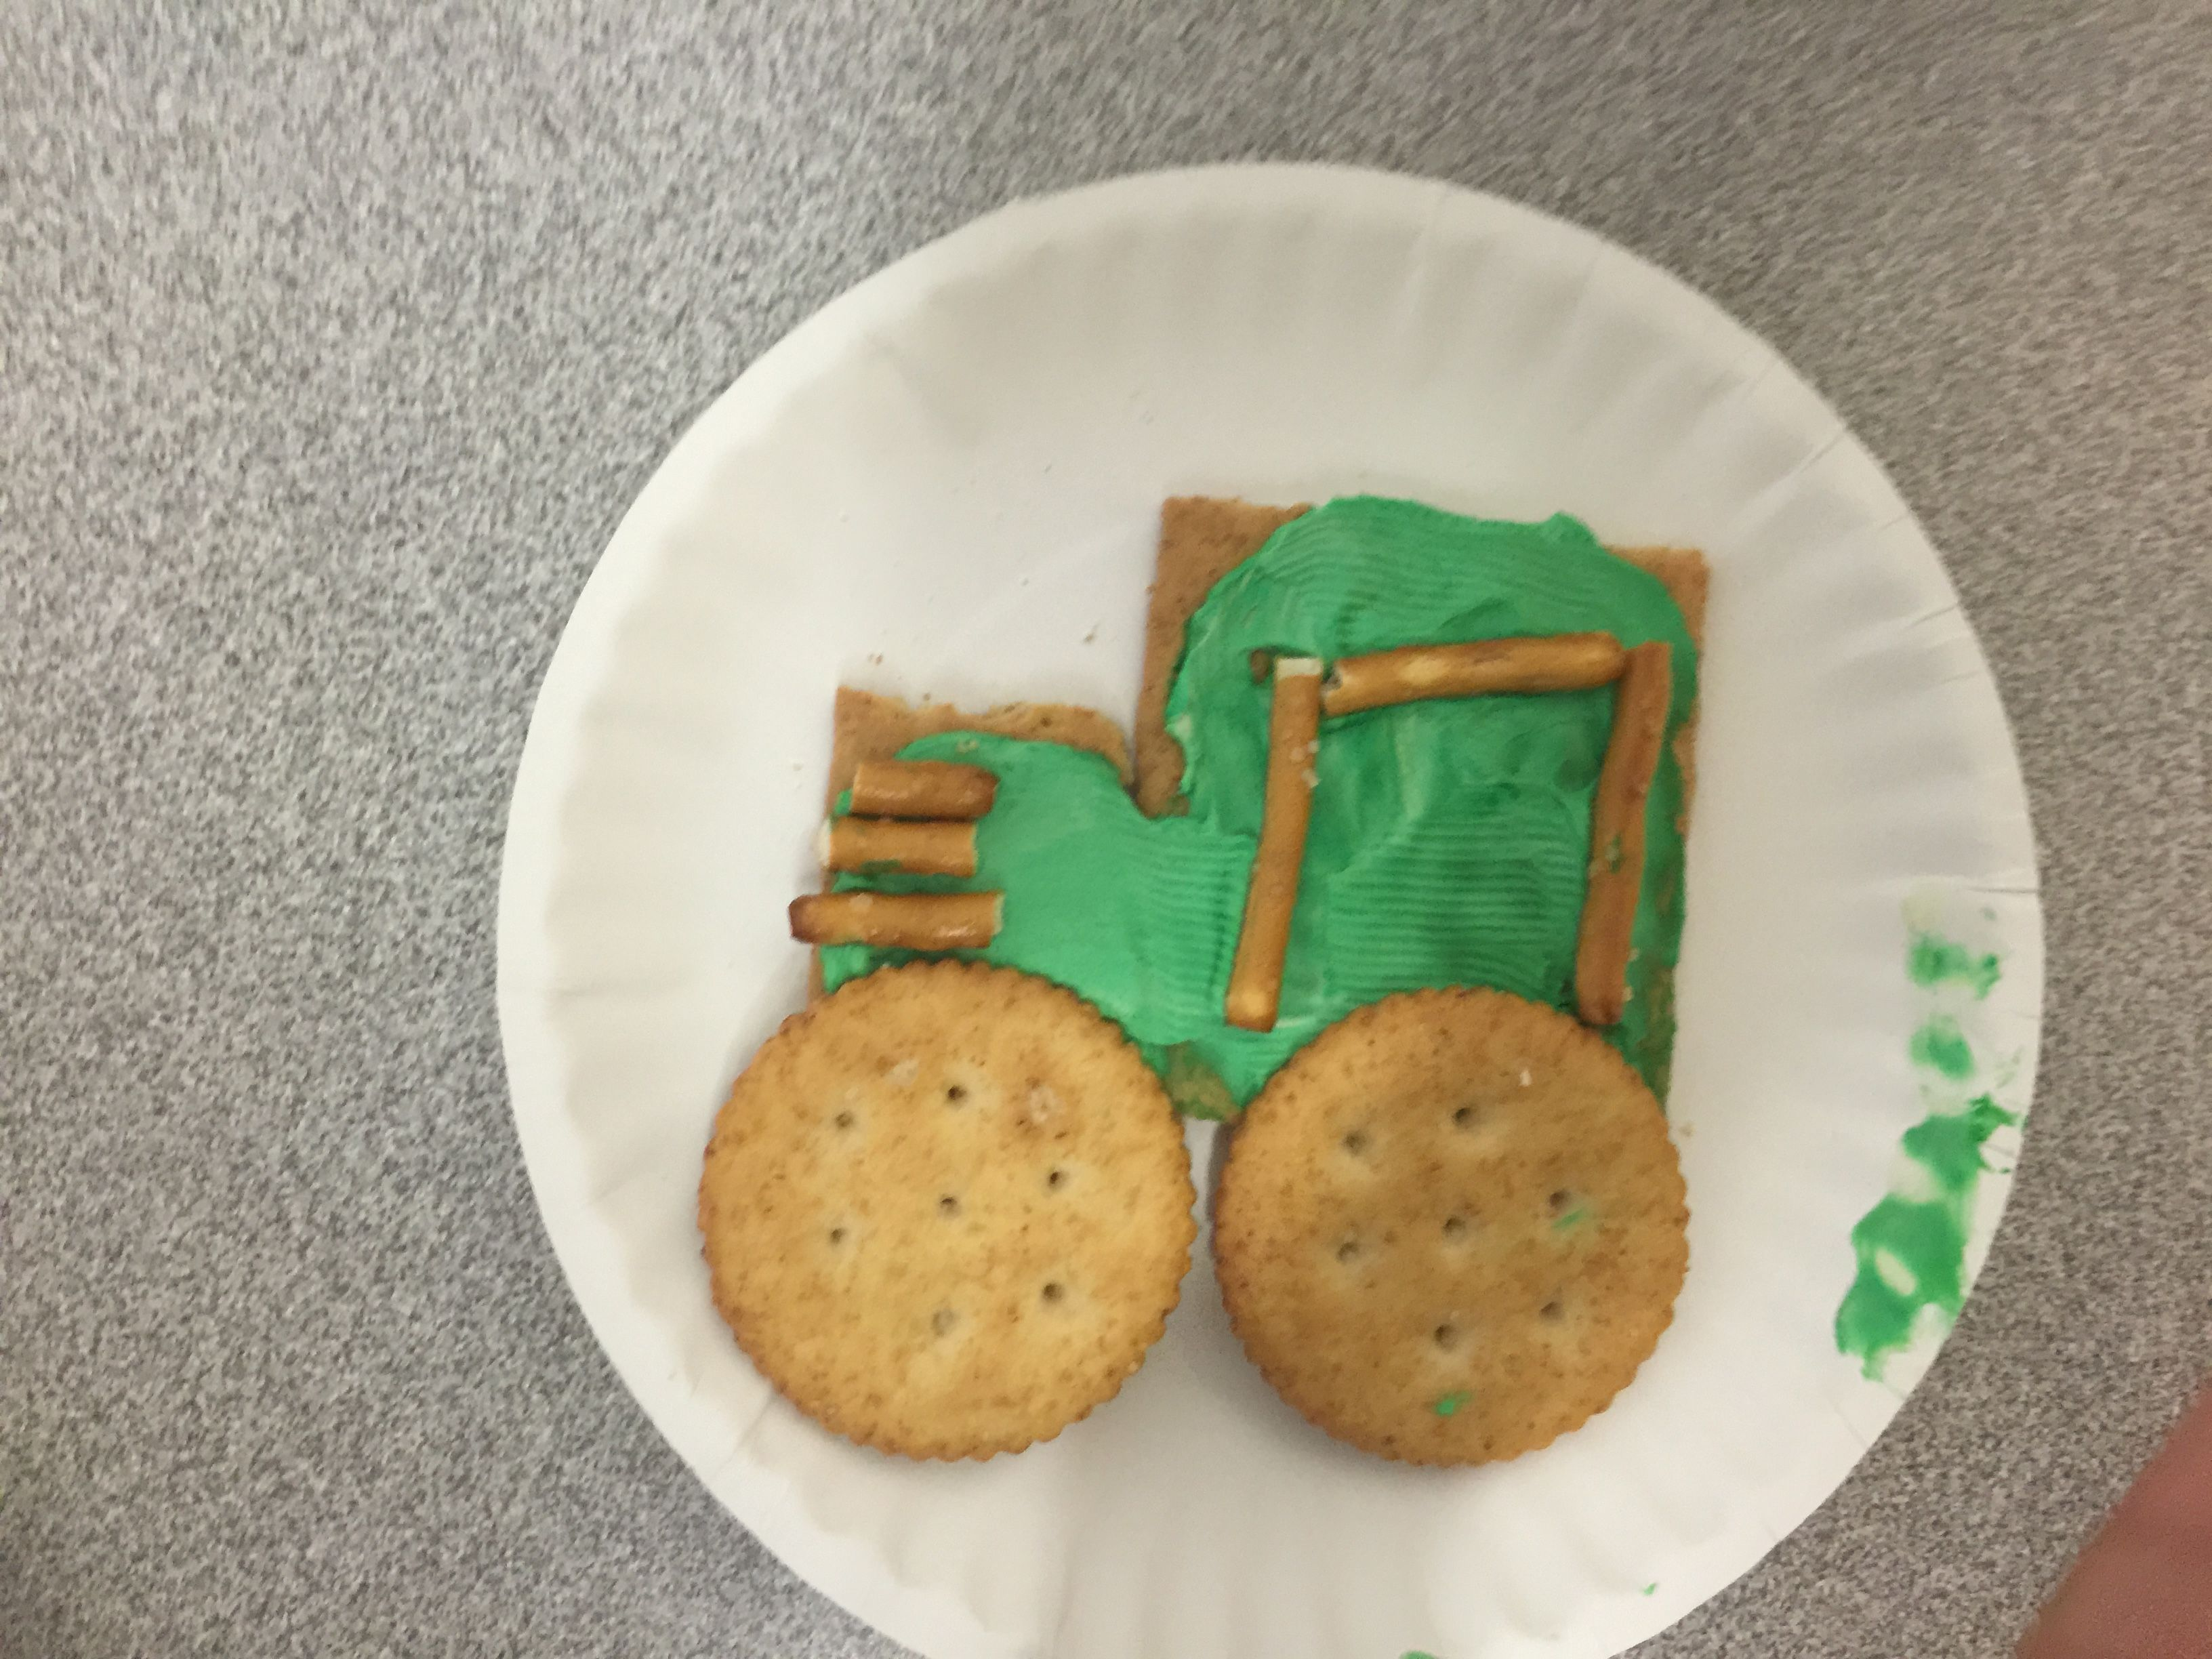 Tractor Snack Graham Cracker Ritz Crackers Green Cream